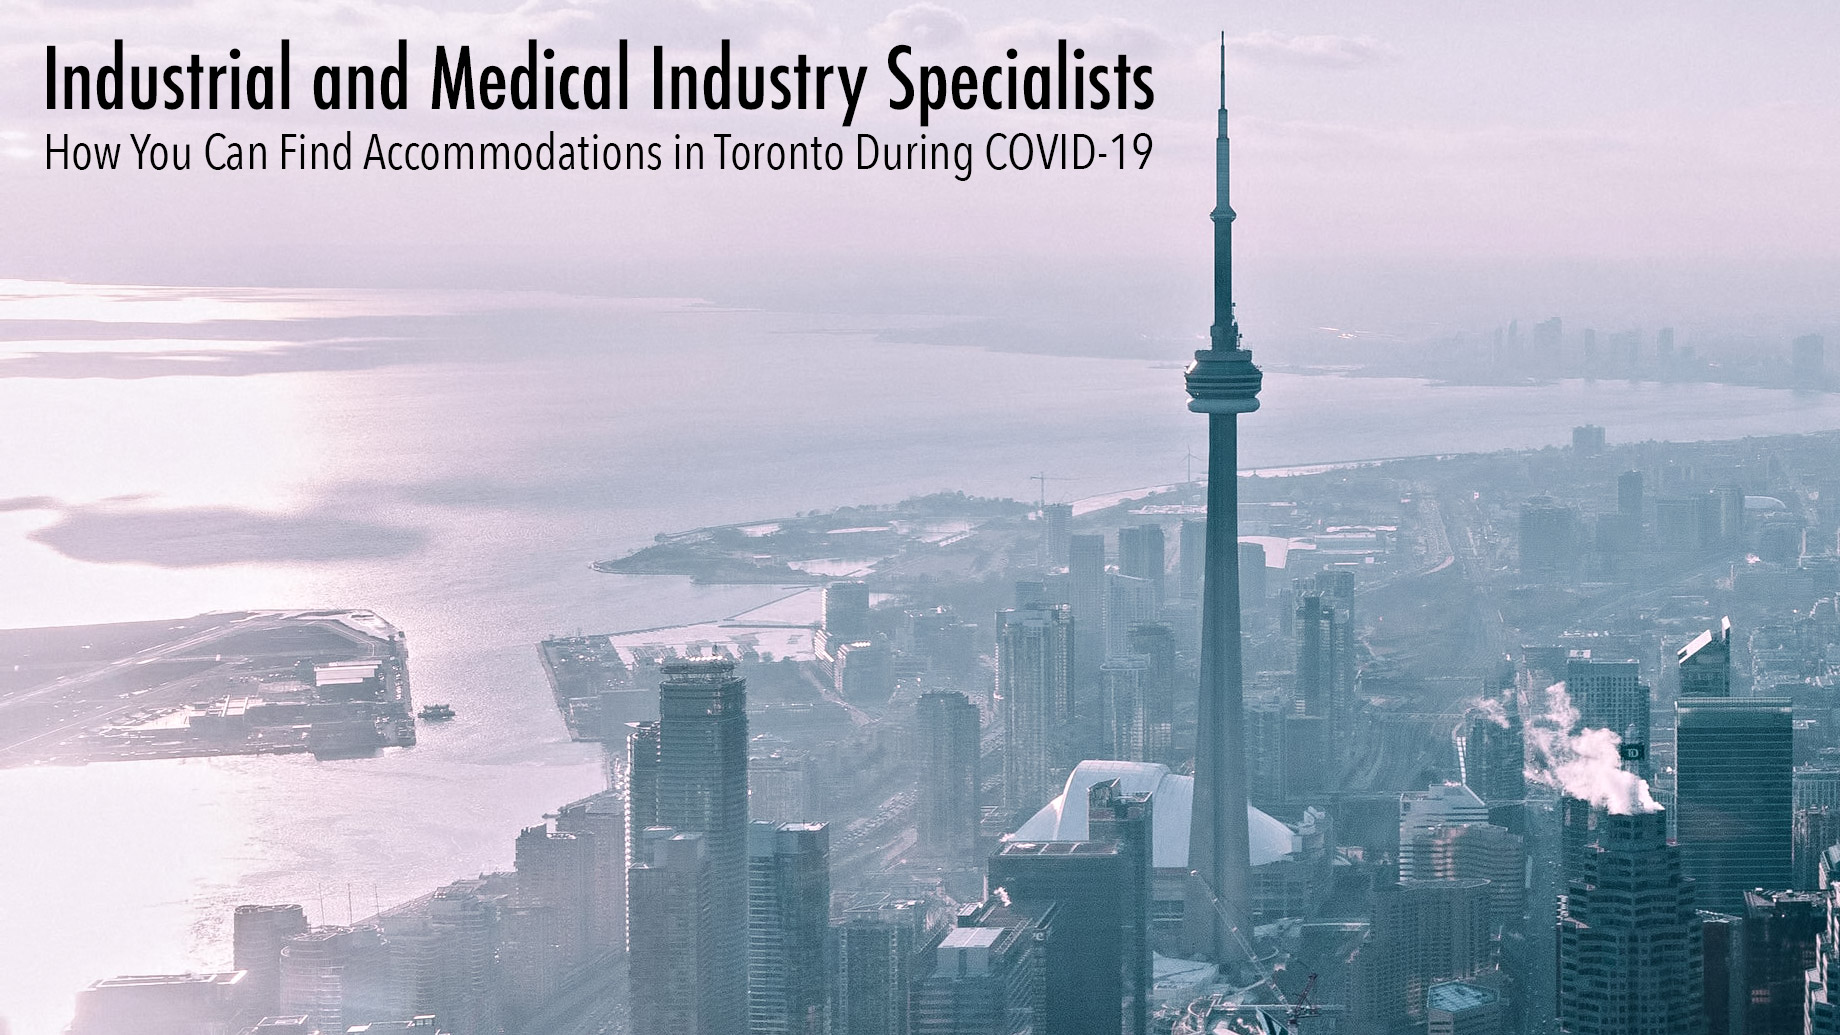 Industrial and Medical Industry Specialists - How You Can Find Accommodations in Toronto During COVID-19